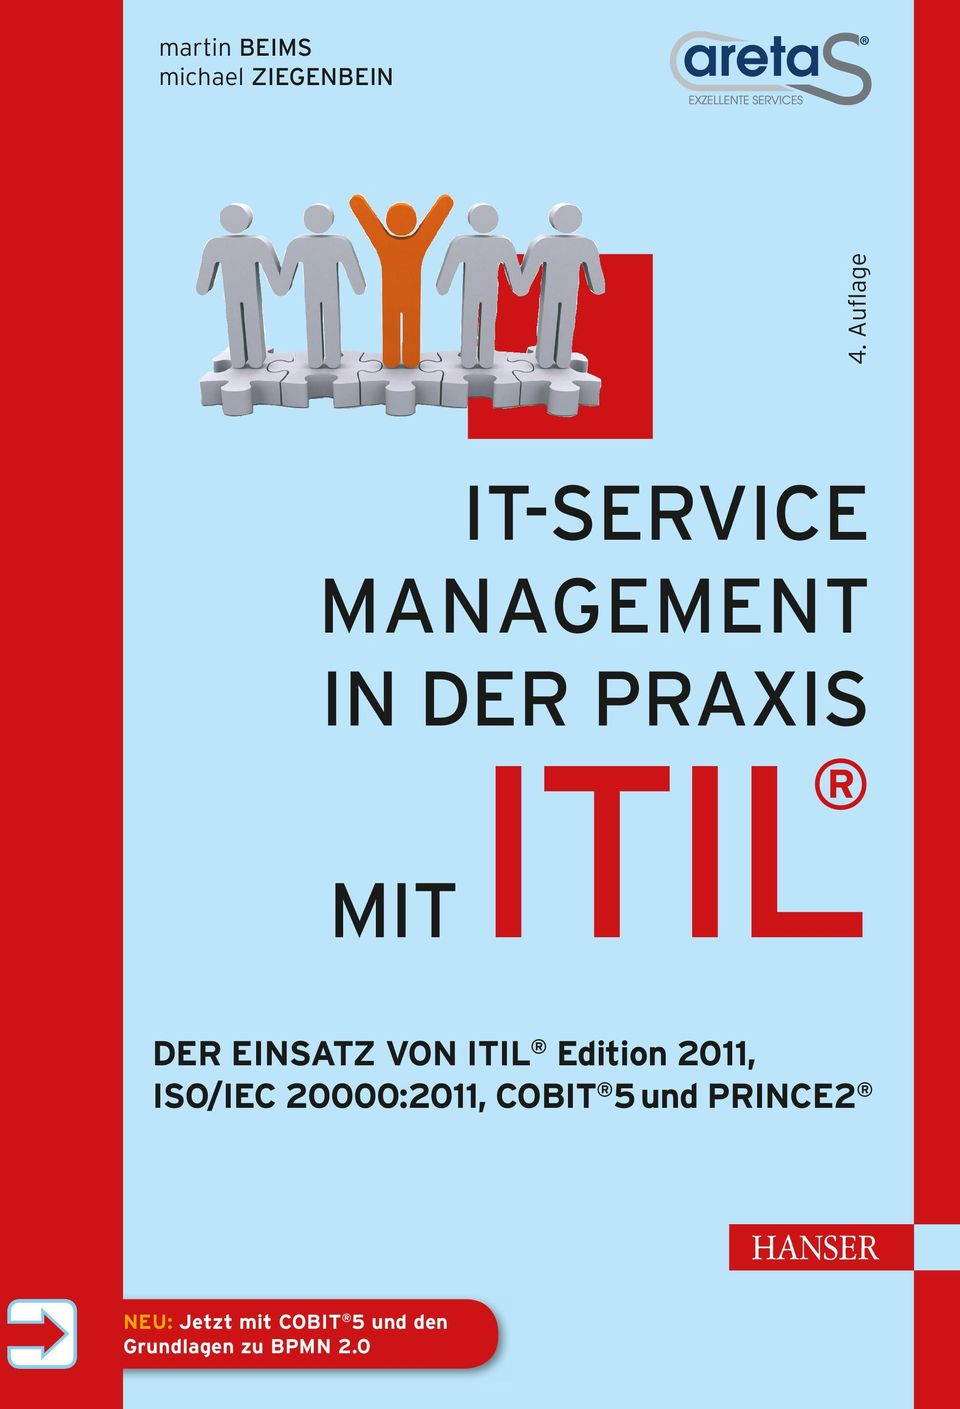 ITIL Edition 2011, ISO/IEC 20000:2011, COBIT 5 und